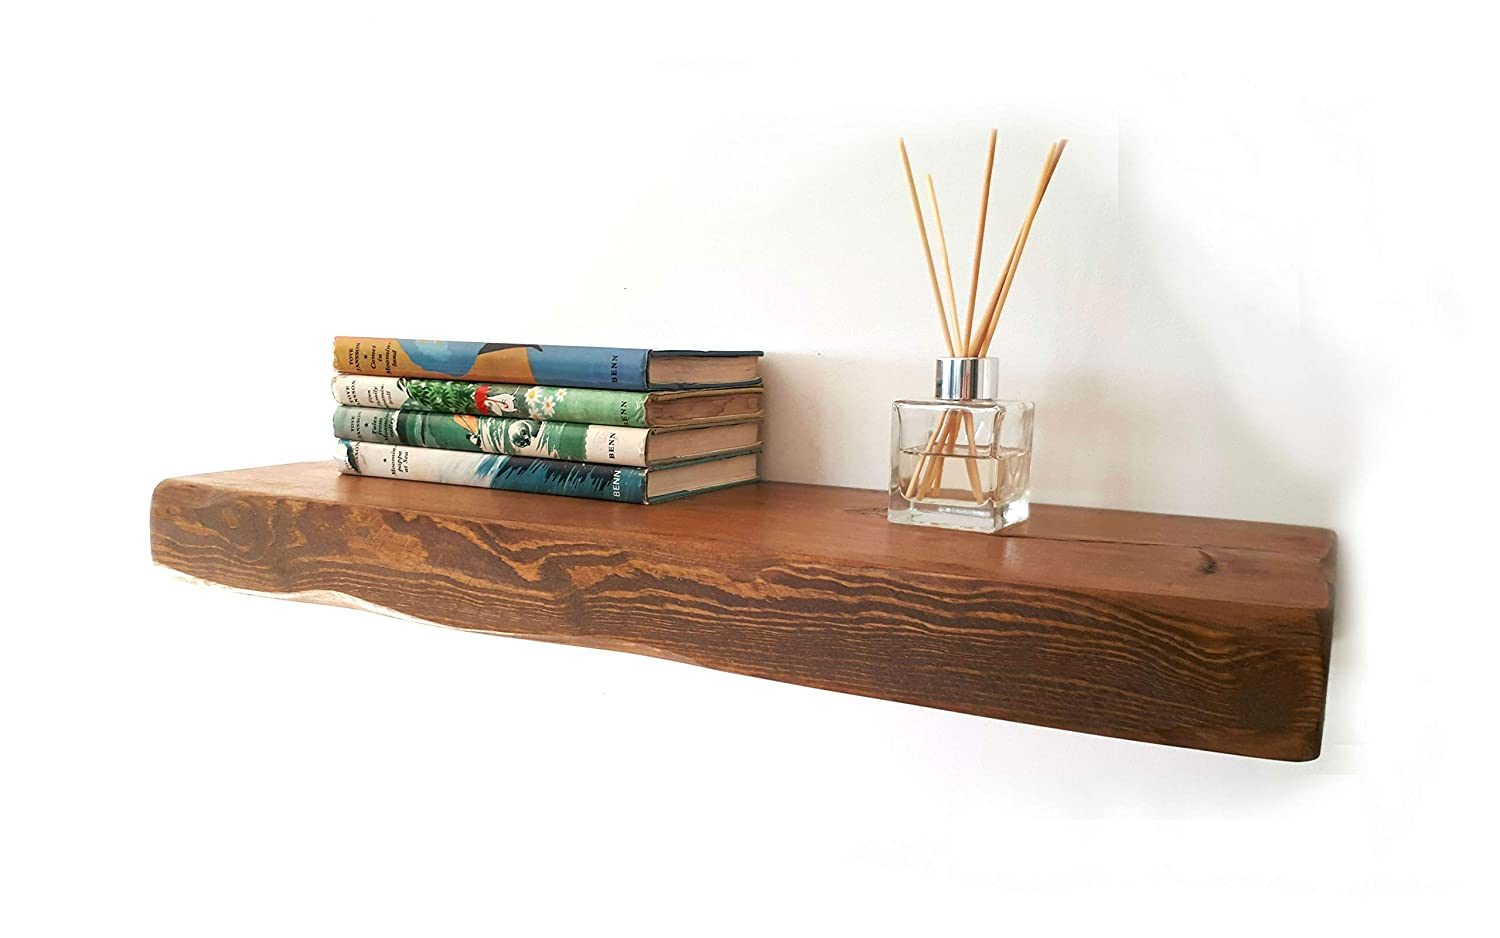 Floating Shelves Reclaimed Solid Wood Rustic Wall Shelf In Medium Oak  Finish 1ft Long - Perfect For Living Room, Kitchen, Bathroom, Office